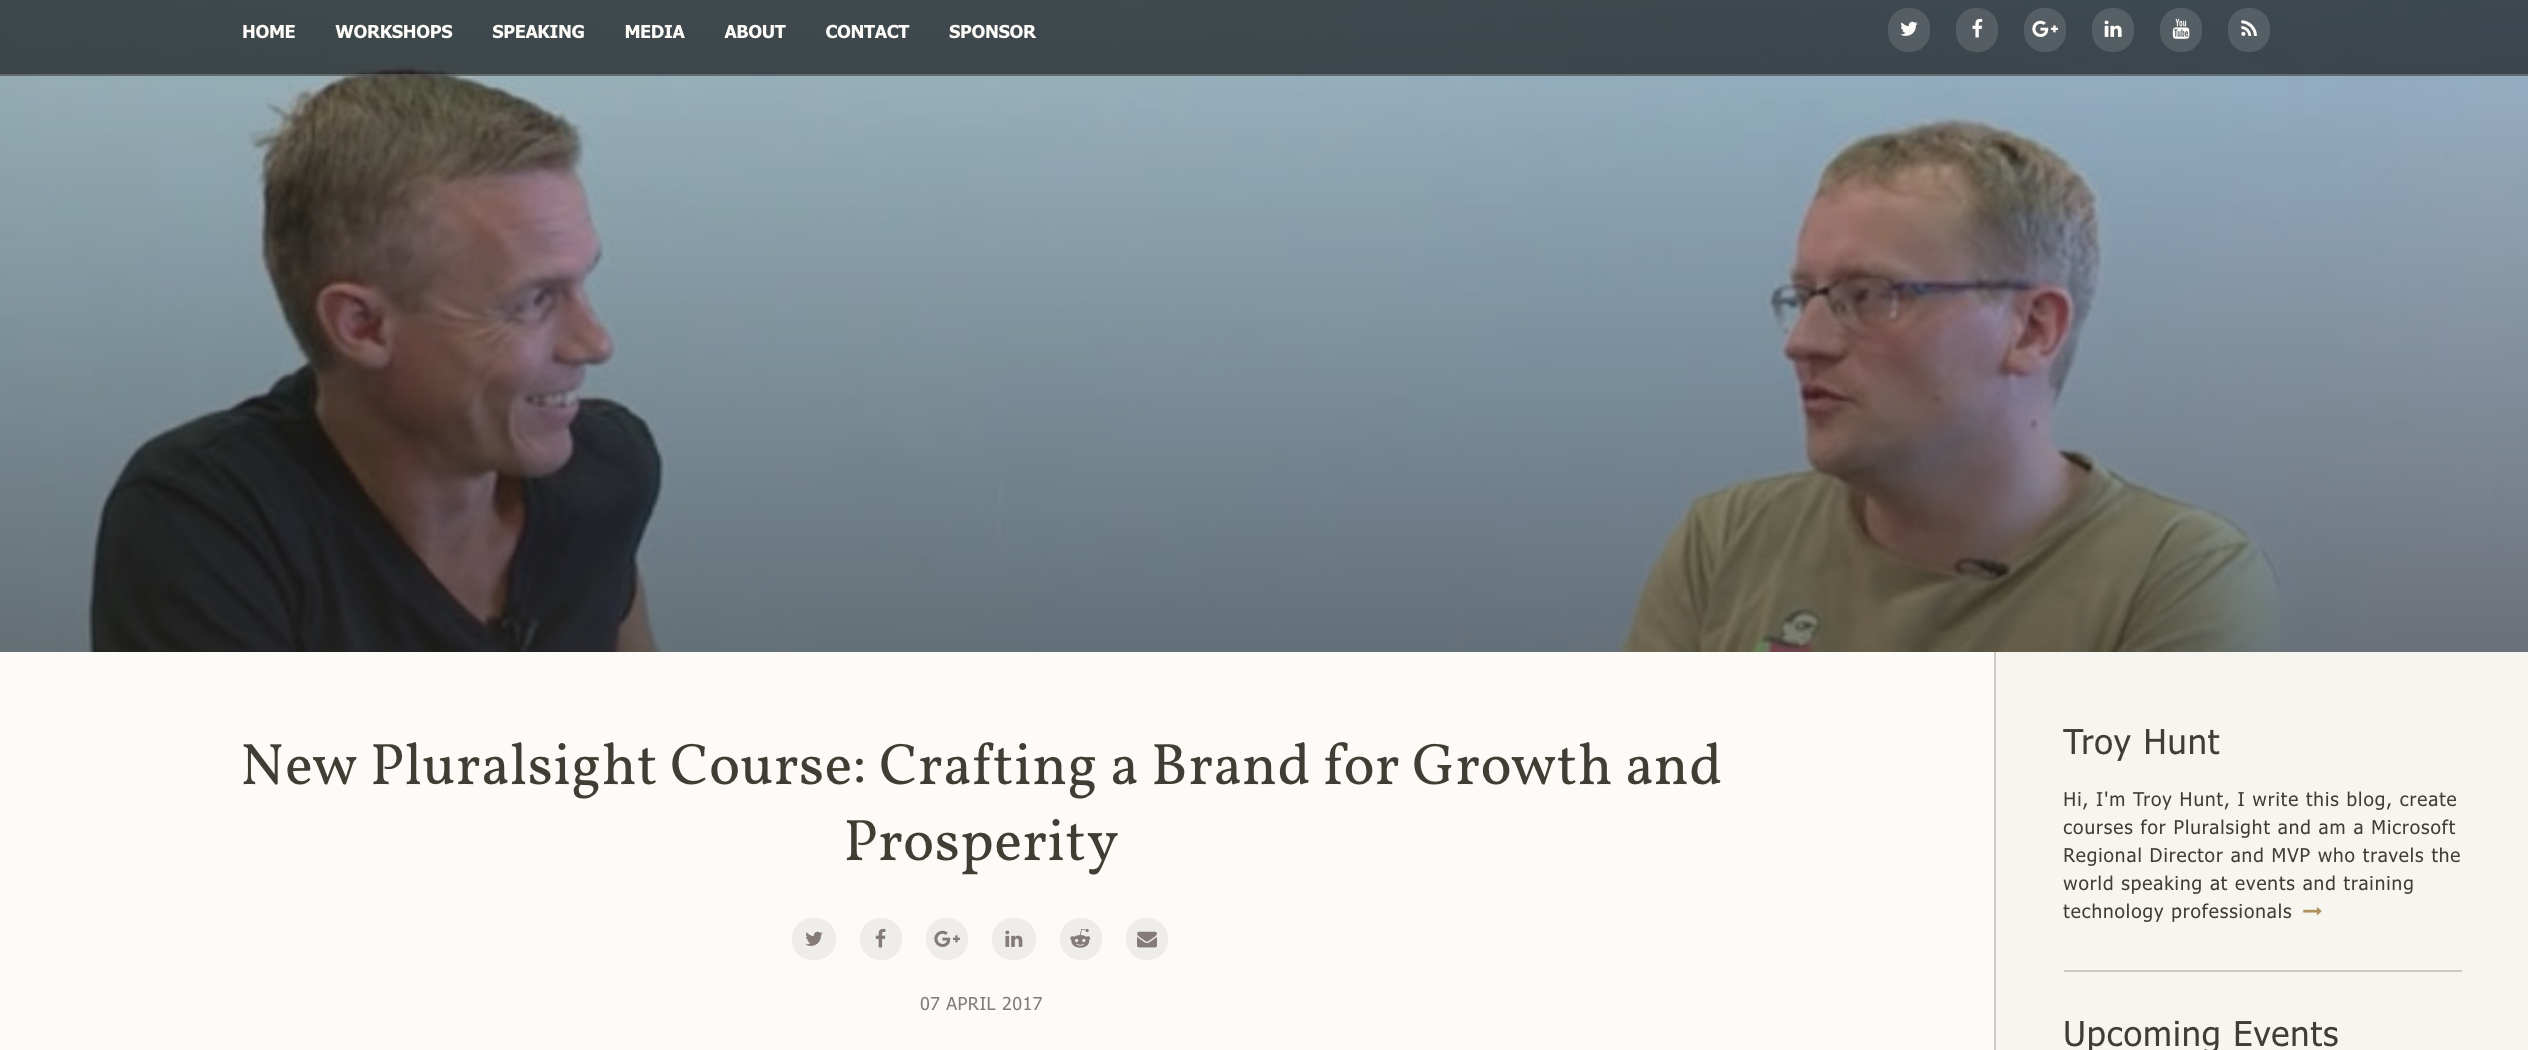 Crafting a Brand for Growth and Prosperity